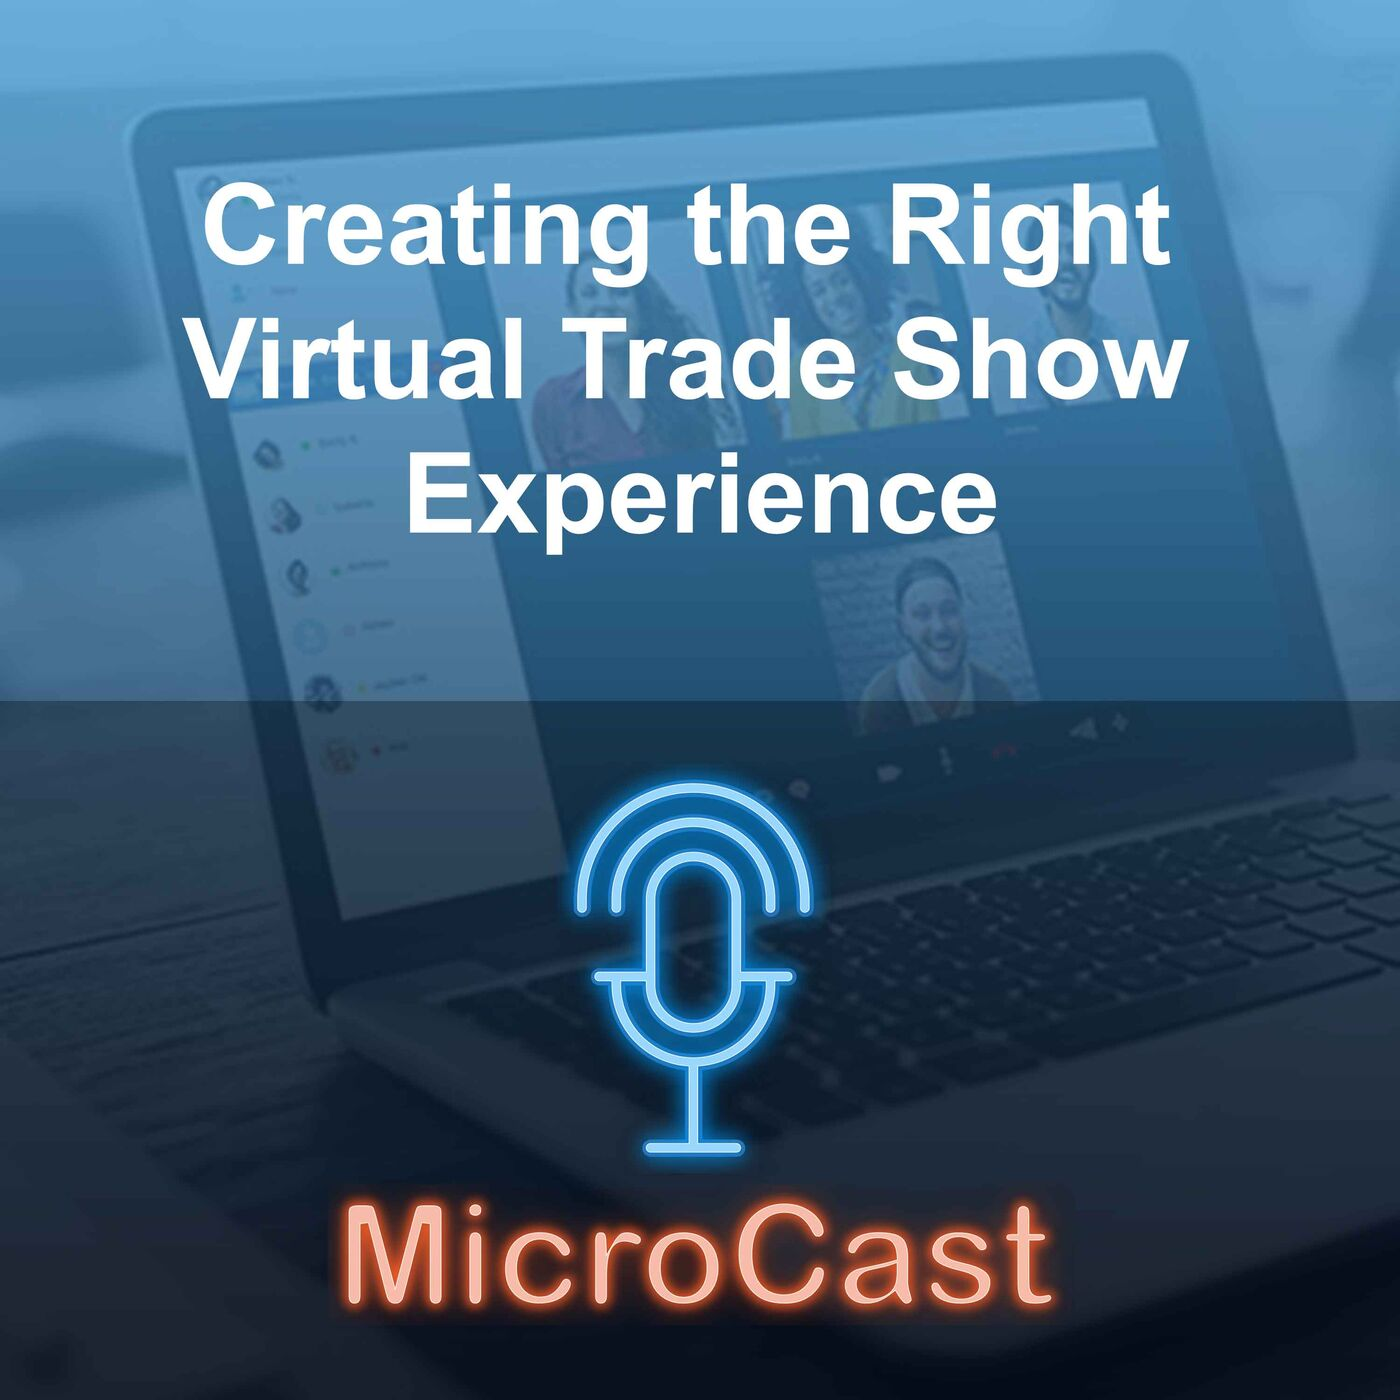 Episode 41 - Creating the Right Virtual Trade Show Experience